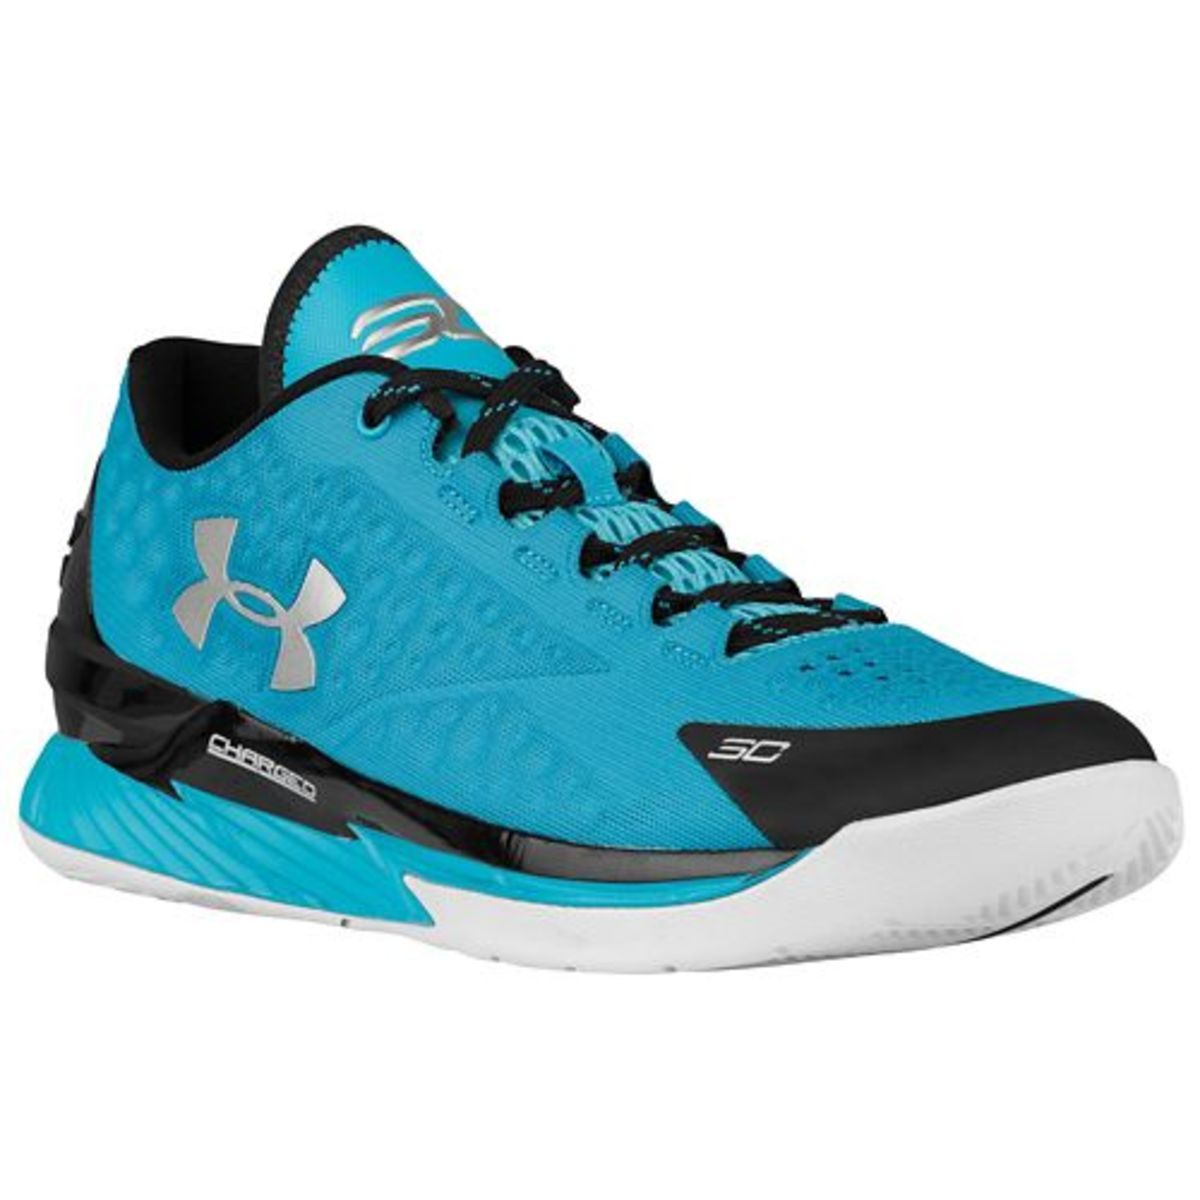 Under Armour Charged Foam Curry 1 Low - Men's